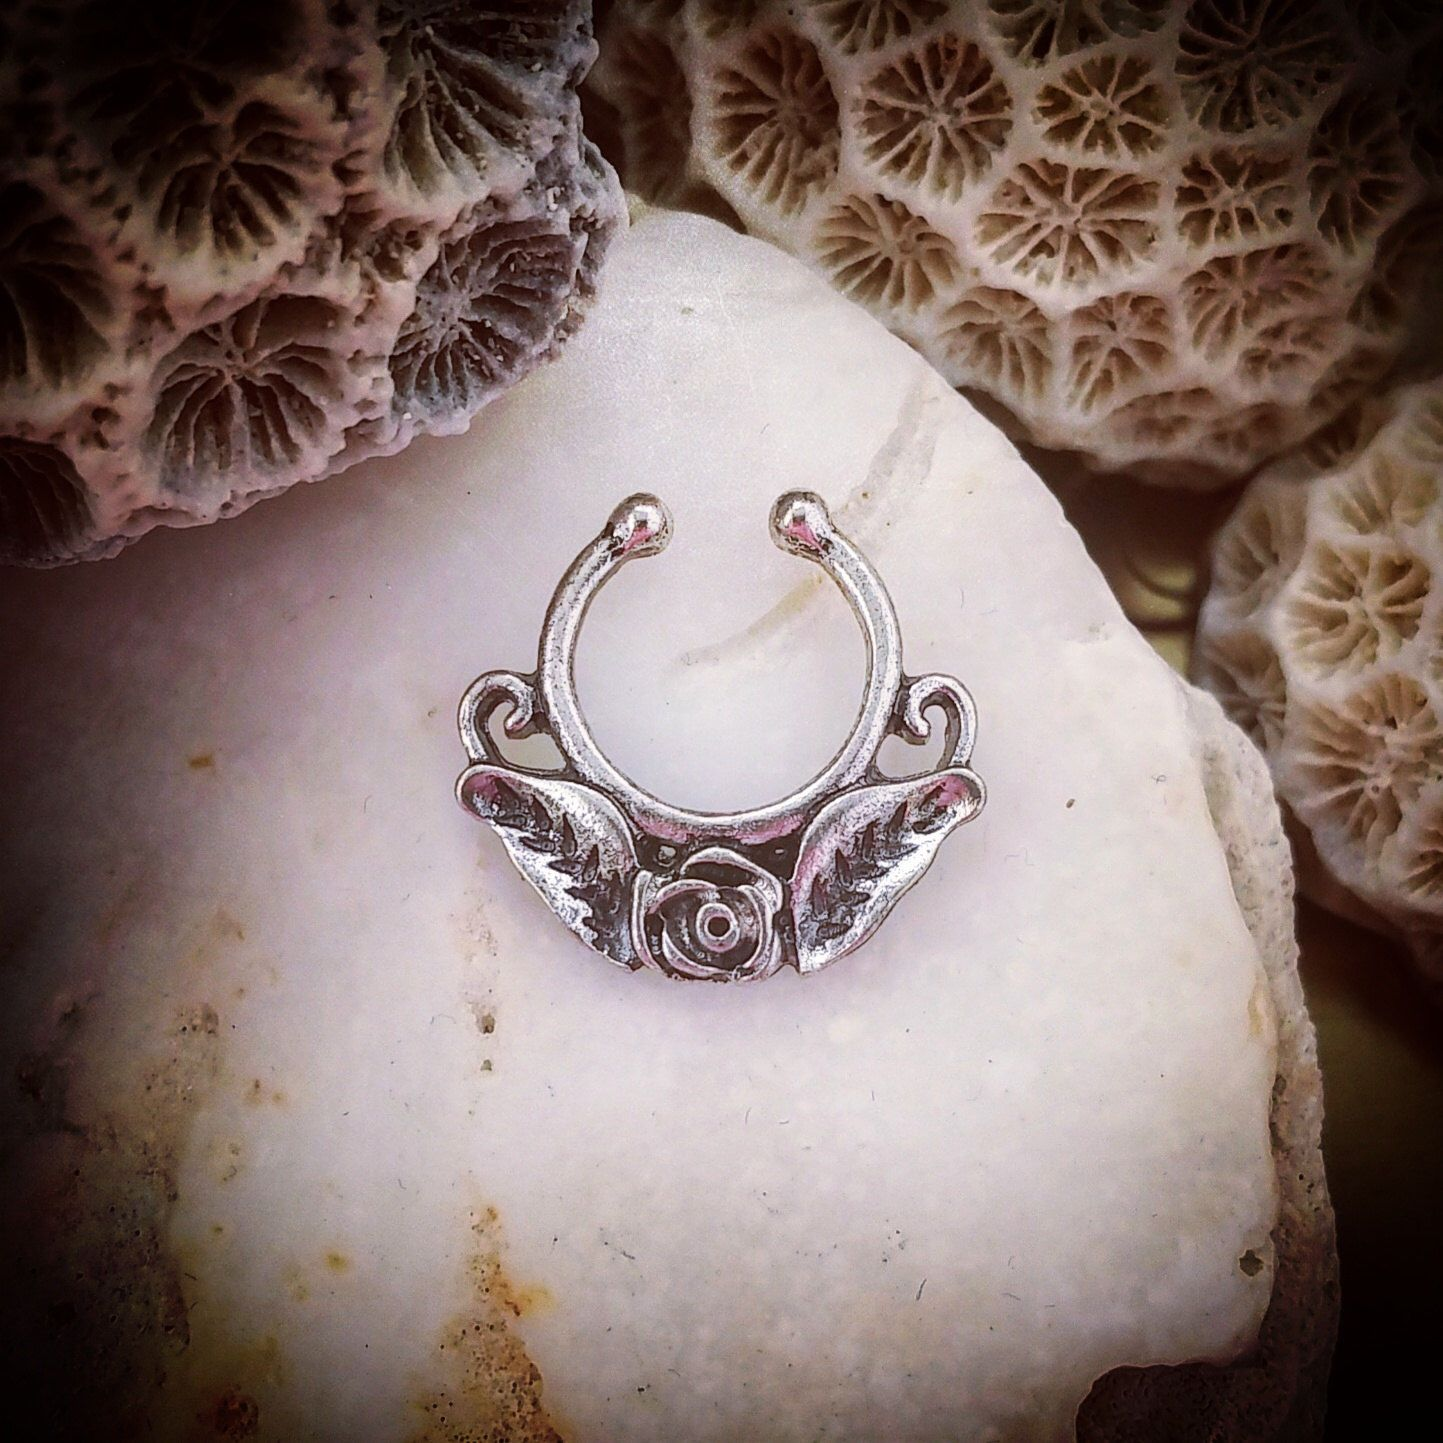 Nose accessories without piercing   Get  off all body jewellery with code PINTEREST at